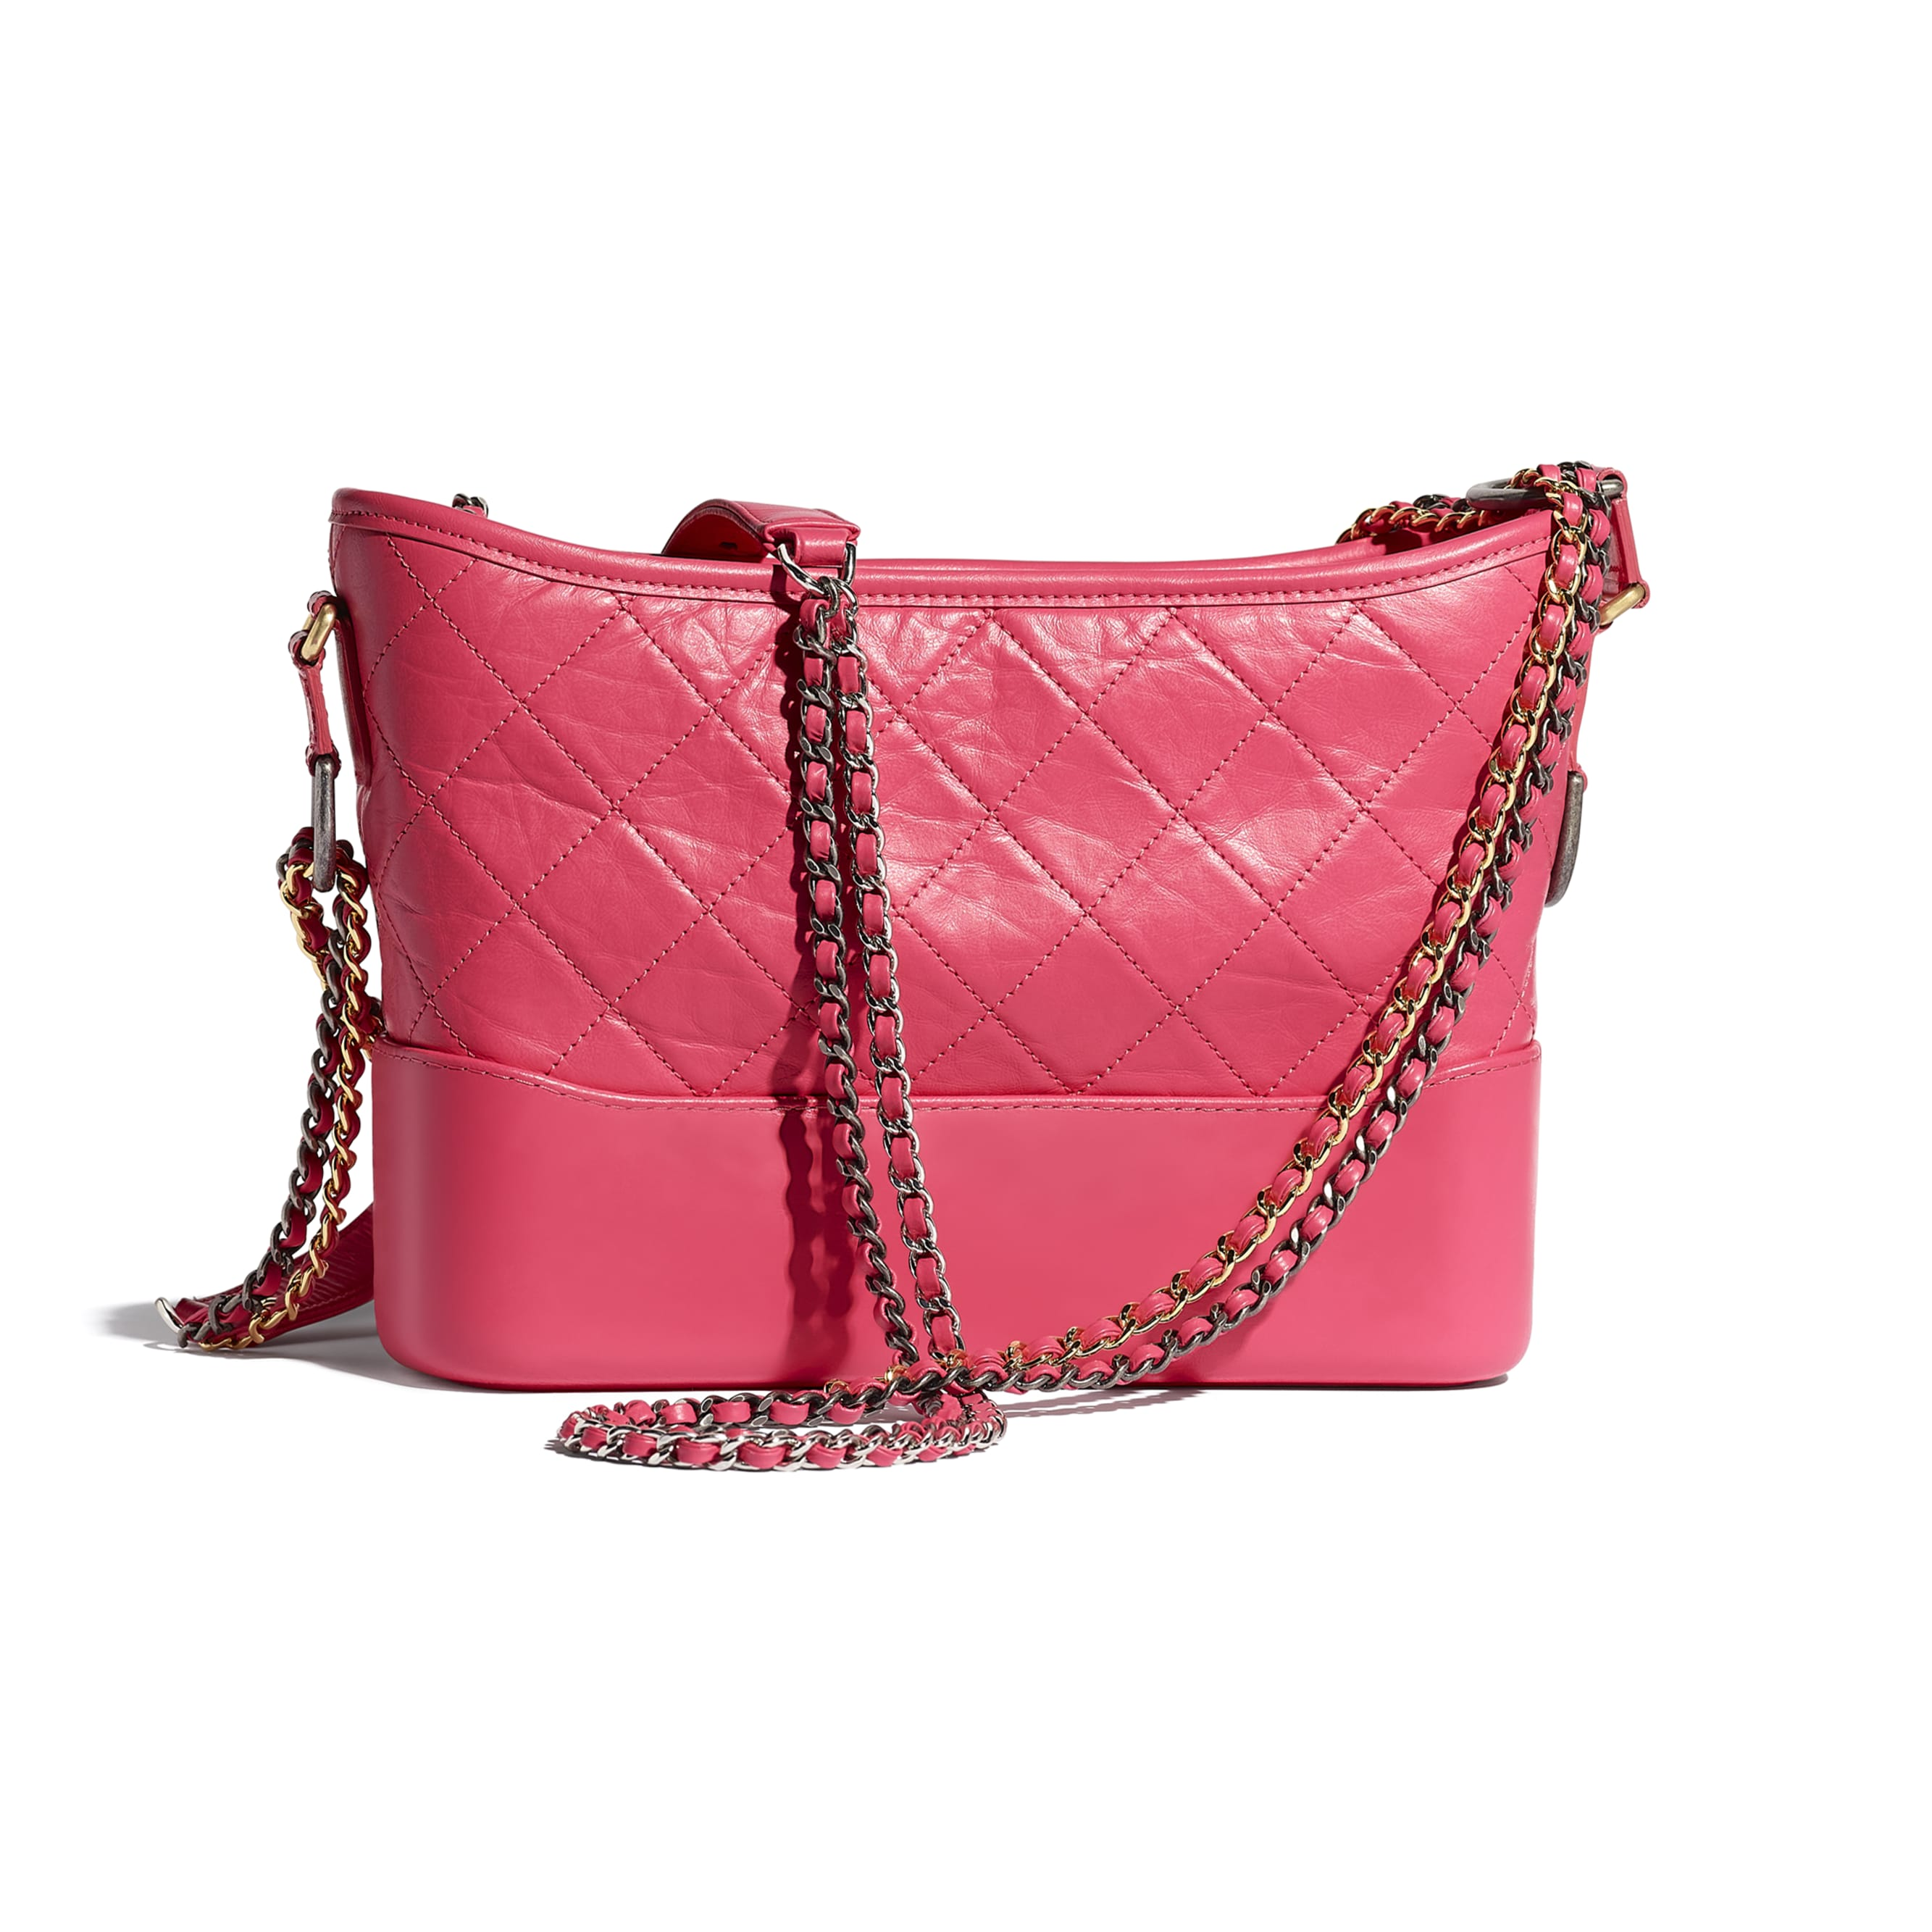 CHANEL'S GABRIELLE Hobo Handbag - Pink - Aged Calfskin, Smooth Calfskin, Gold-Tone, Silver-Tone & Ruthenium-Finish Metal - CHANEL - Alternative view - see standard sized version